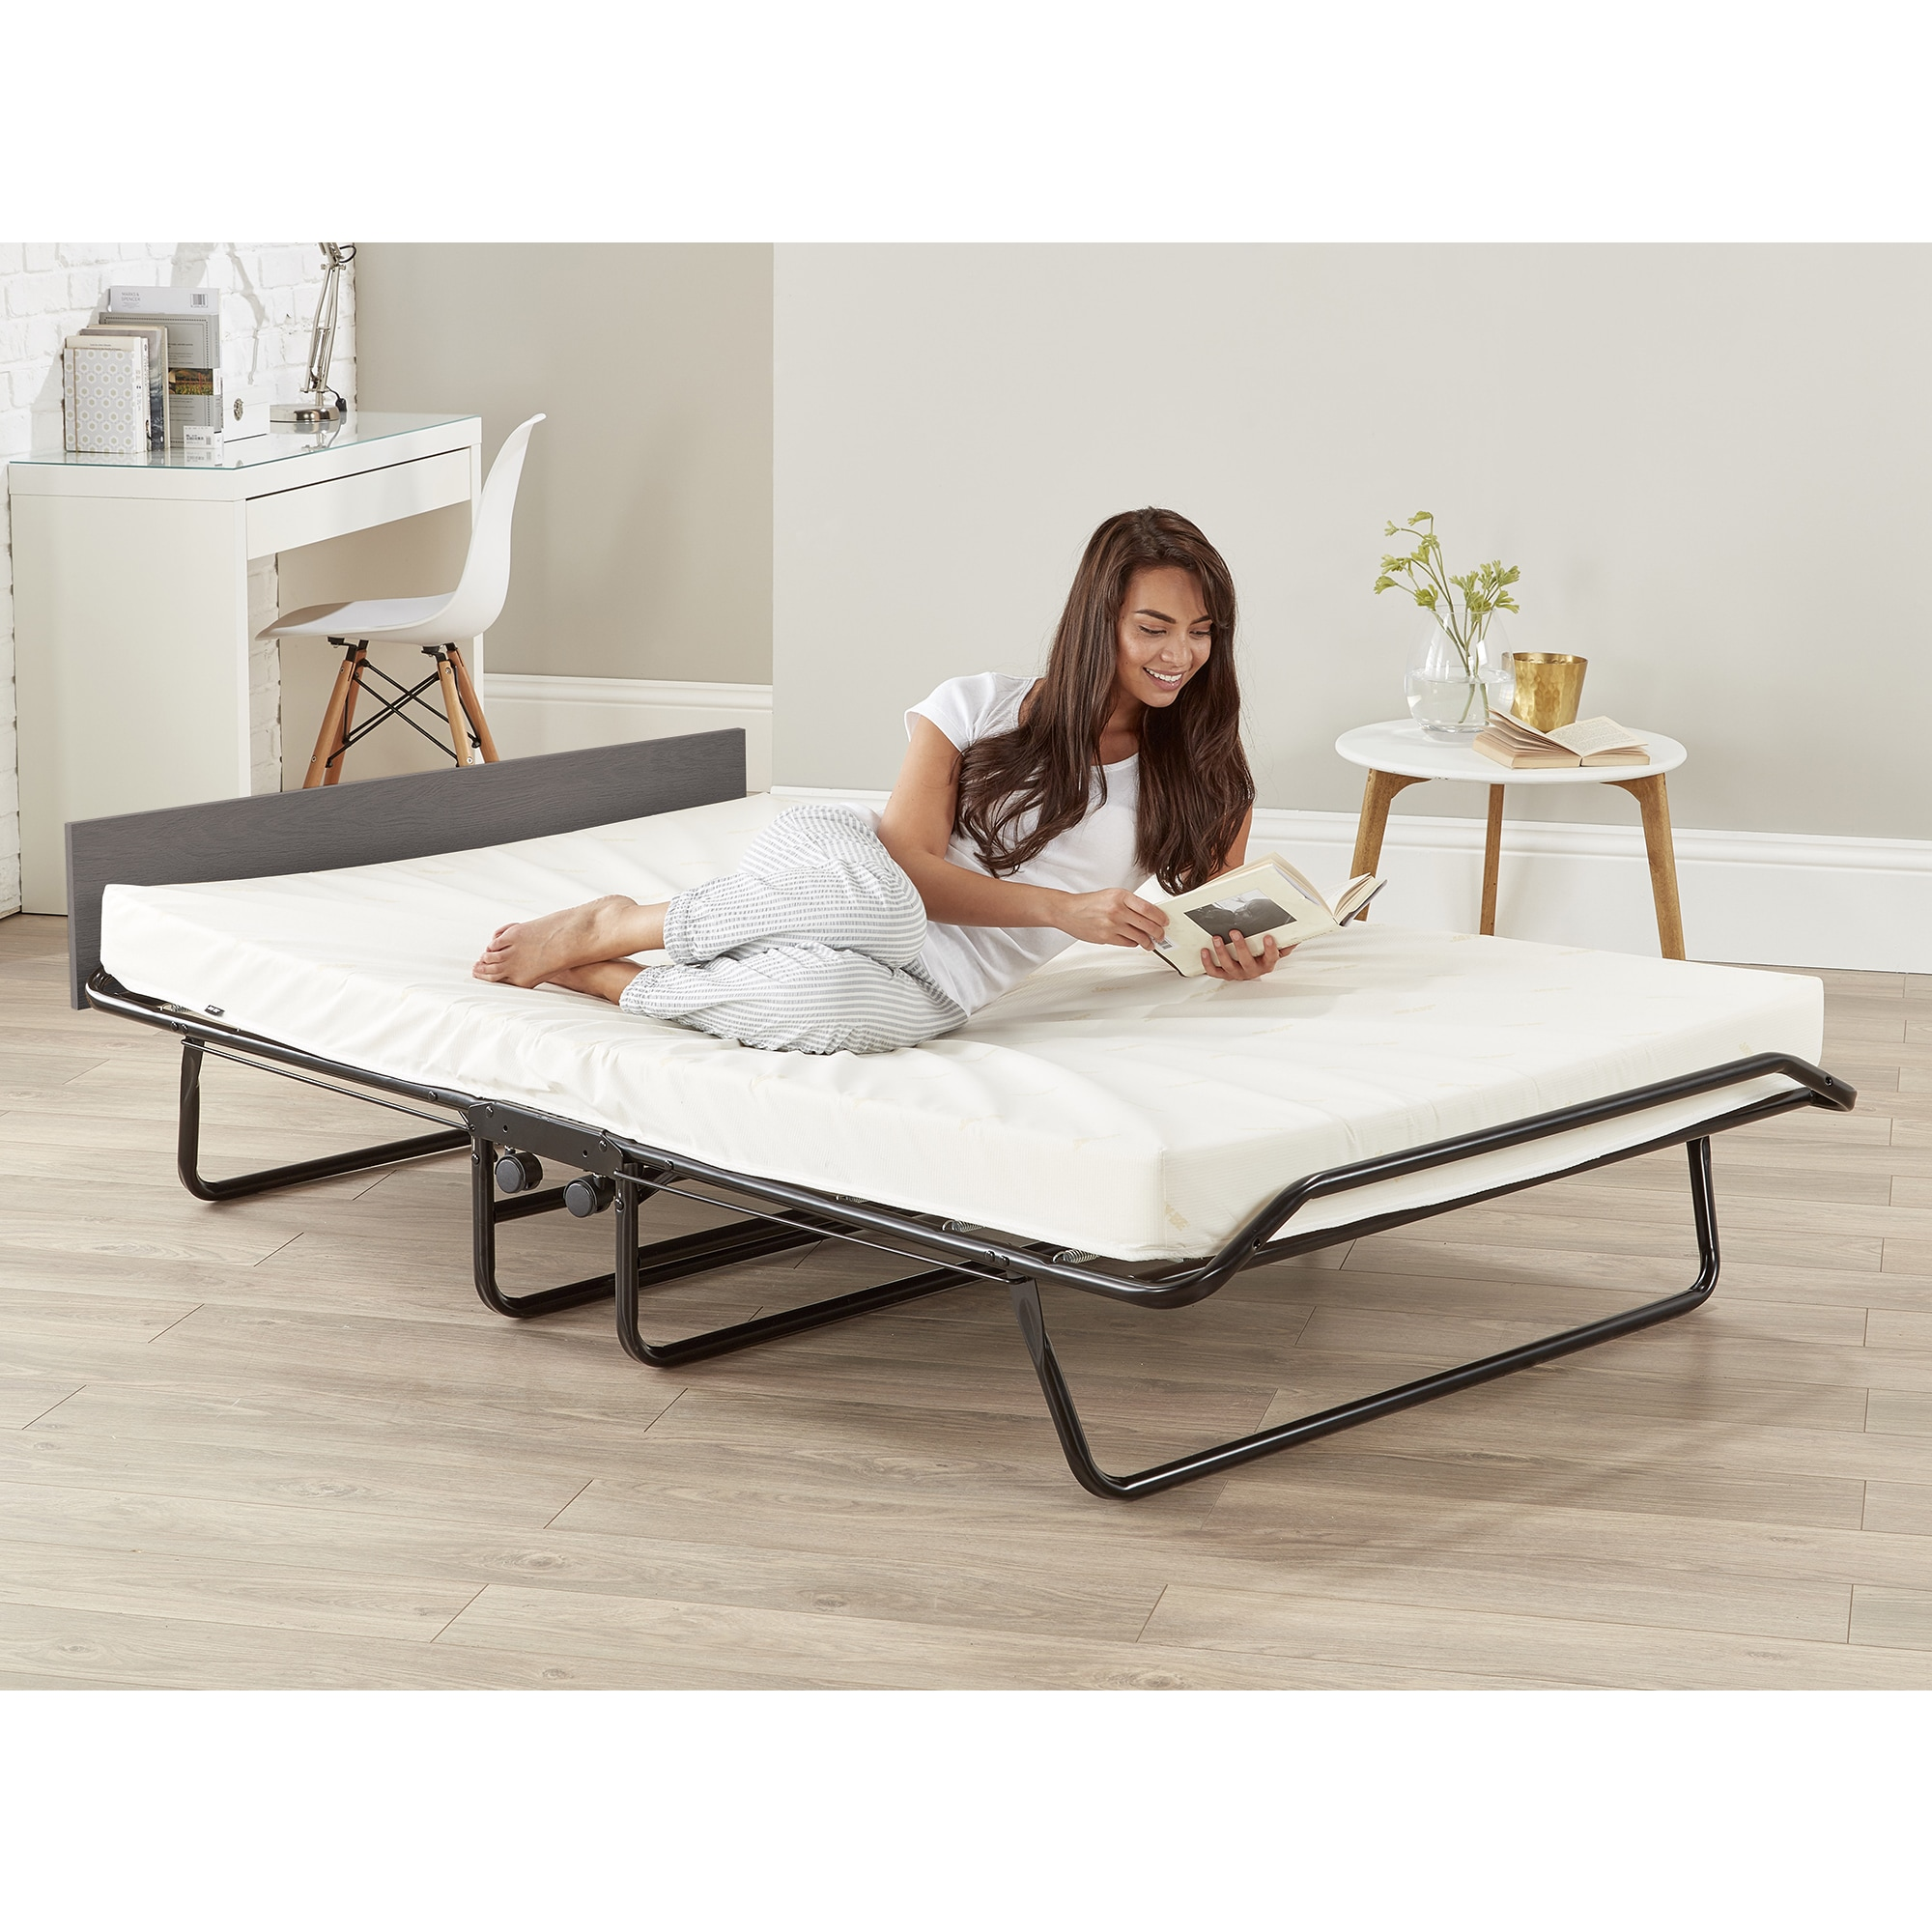 fe88aa208ab Shop JAY-BE Visitor Oversize Folding Bed with Airflow Memory Foam Mattress  - Free Shipping Today - Overstock - 15372155